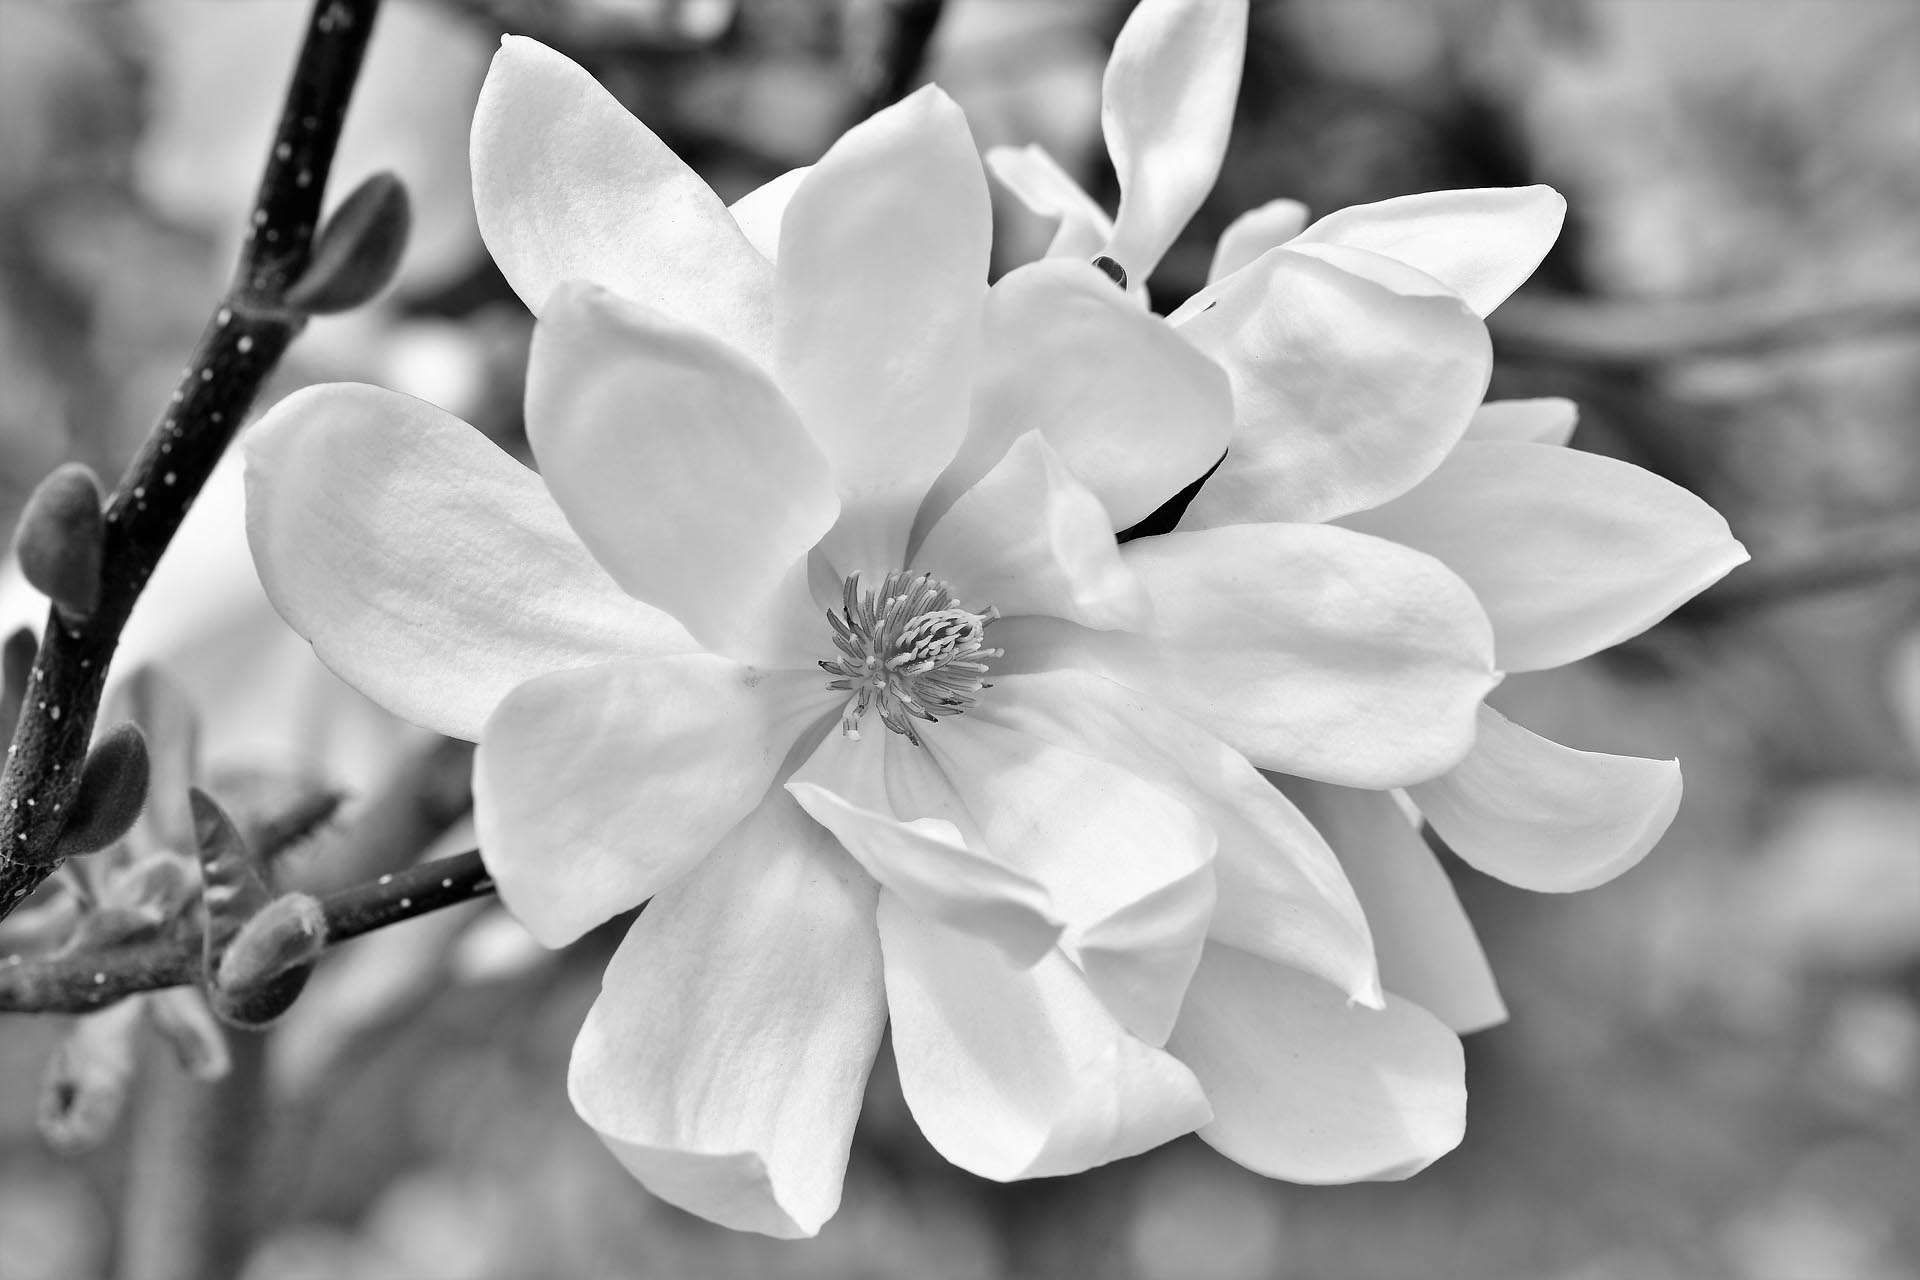 black and white image of a magnolia flower